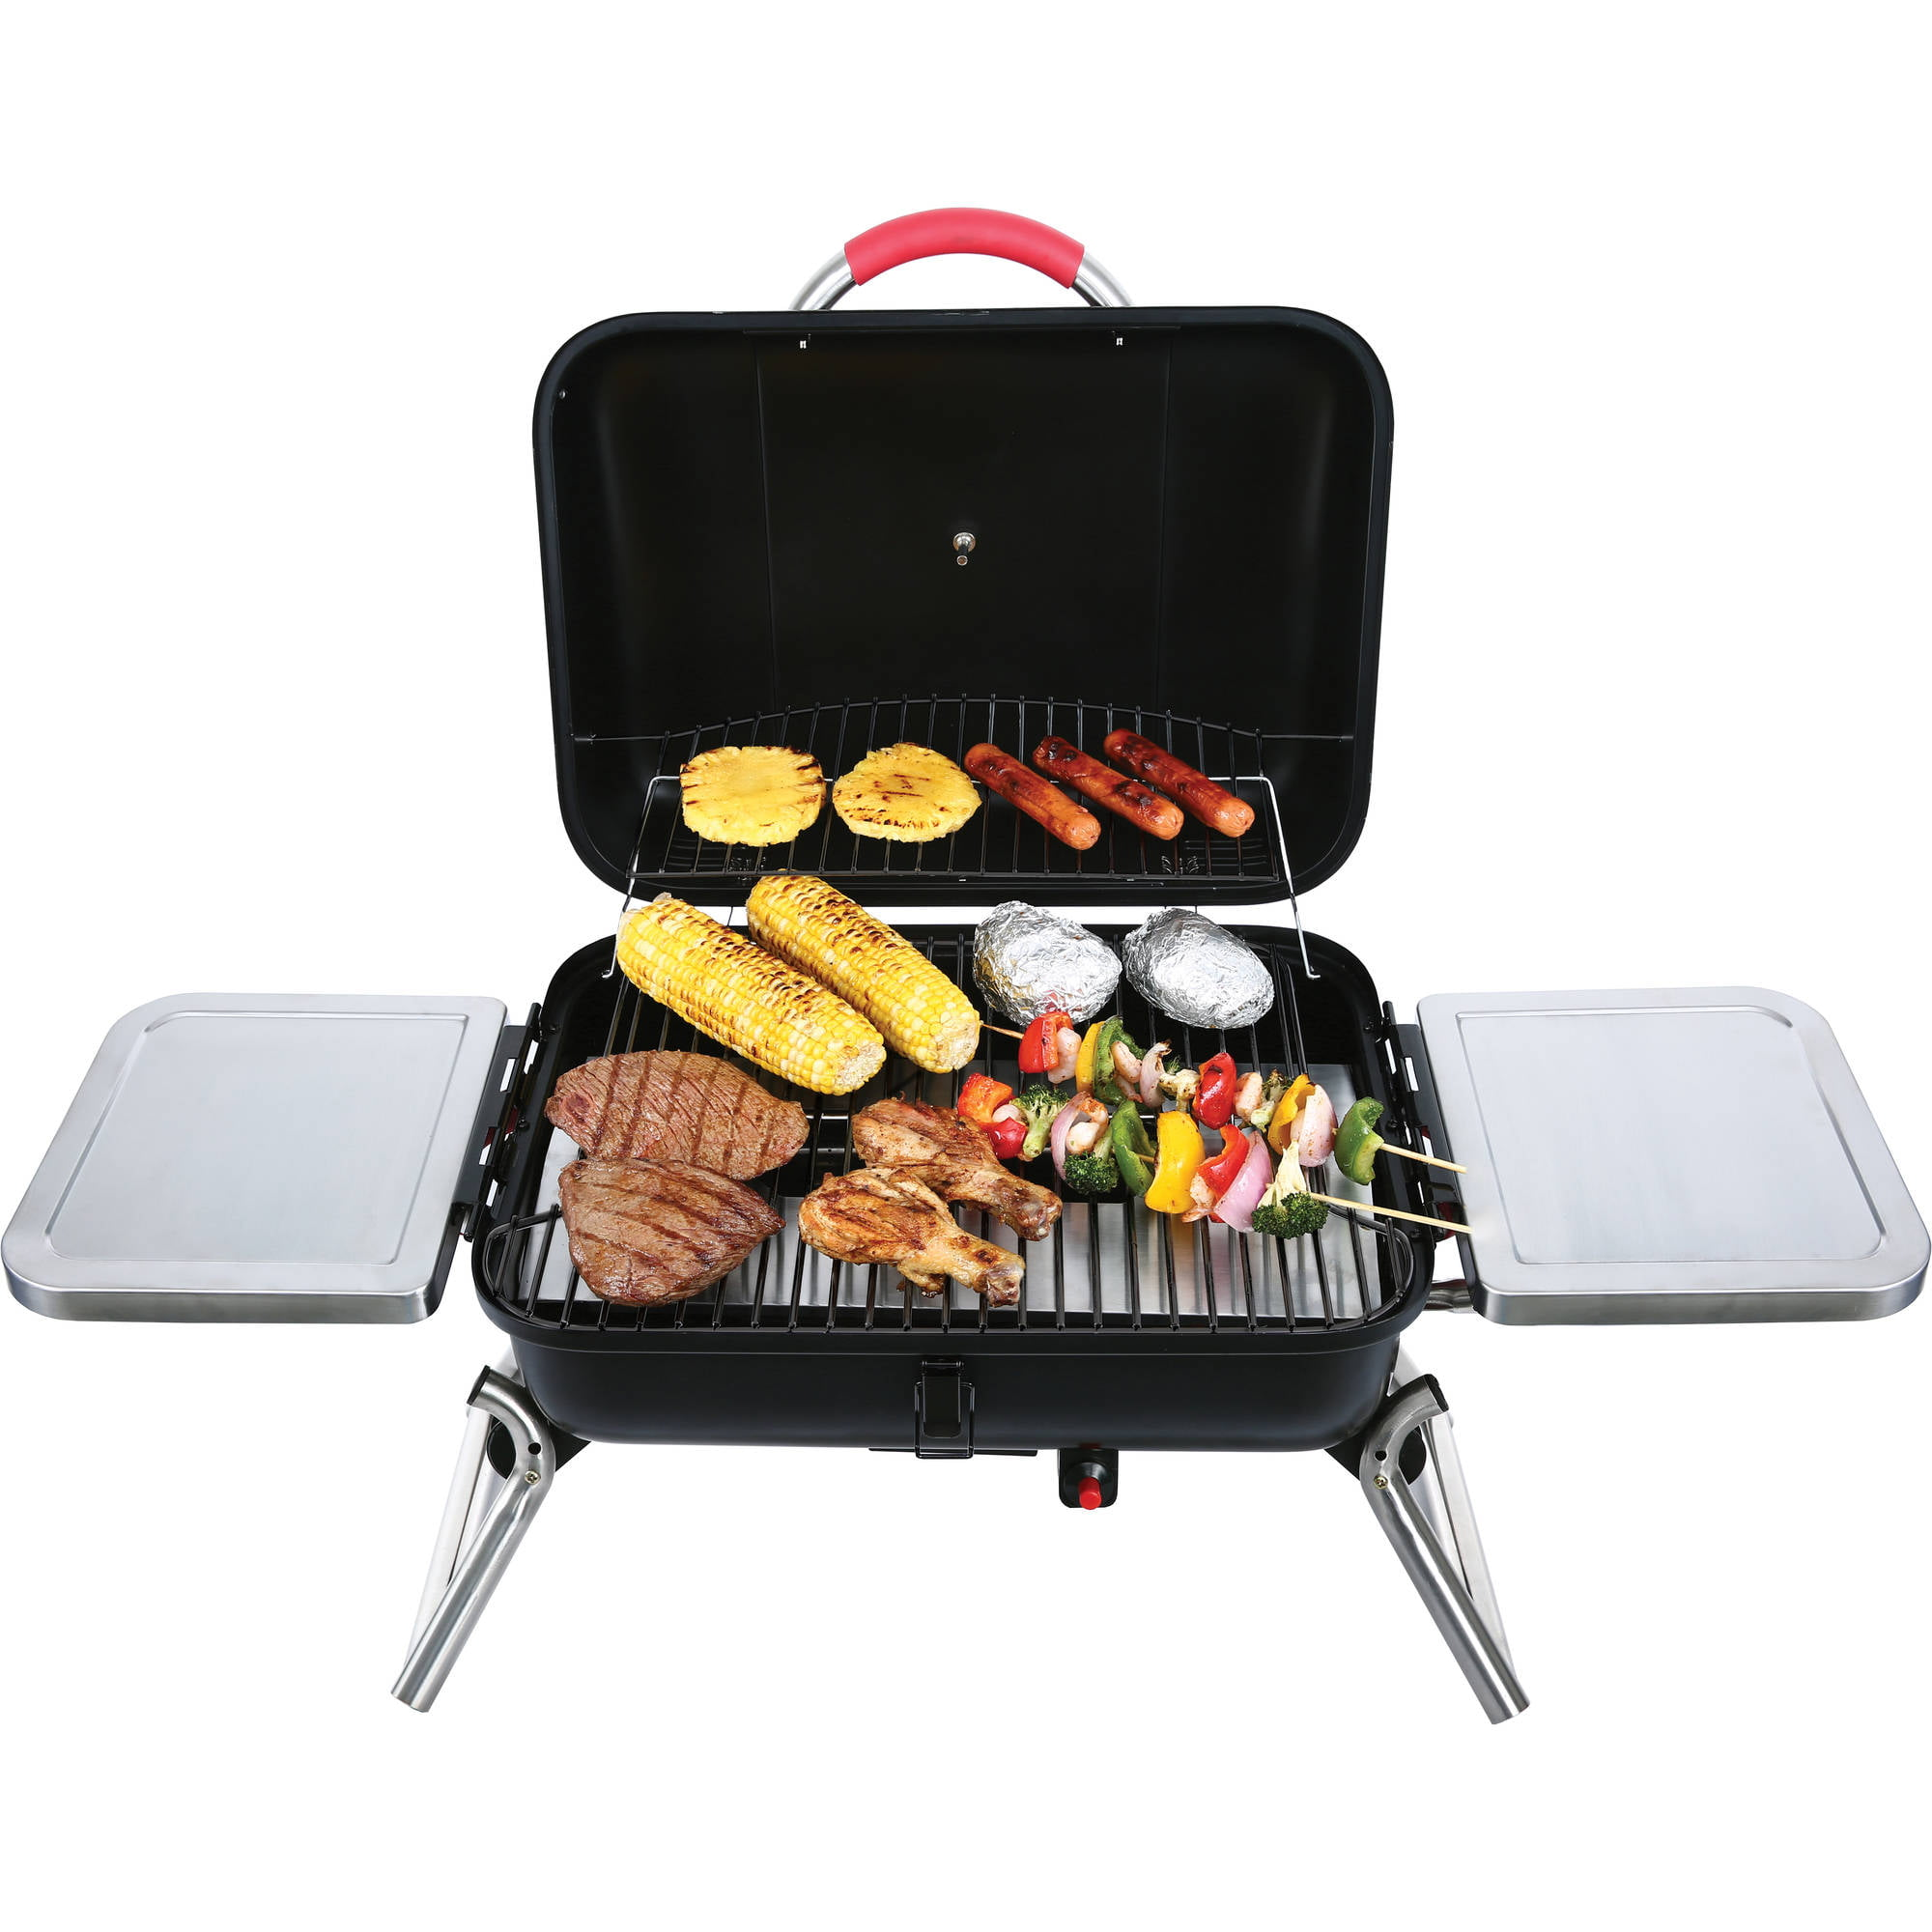 small gas grill tabletop table top portable outdoor bbq camping tailgate new ebay. Black Bedroom Furniture Sets. Home Design Ideas